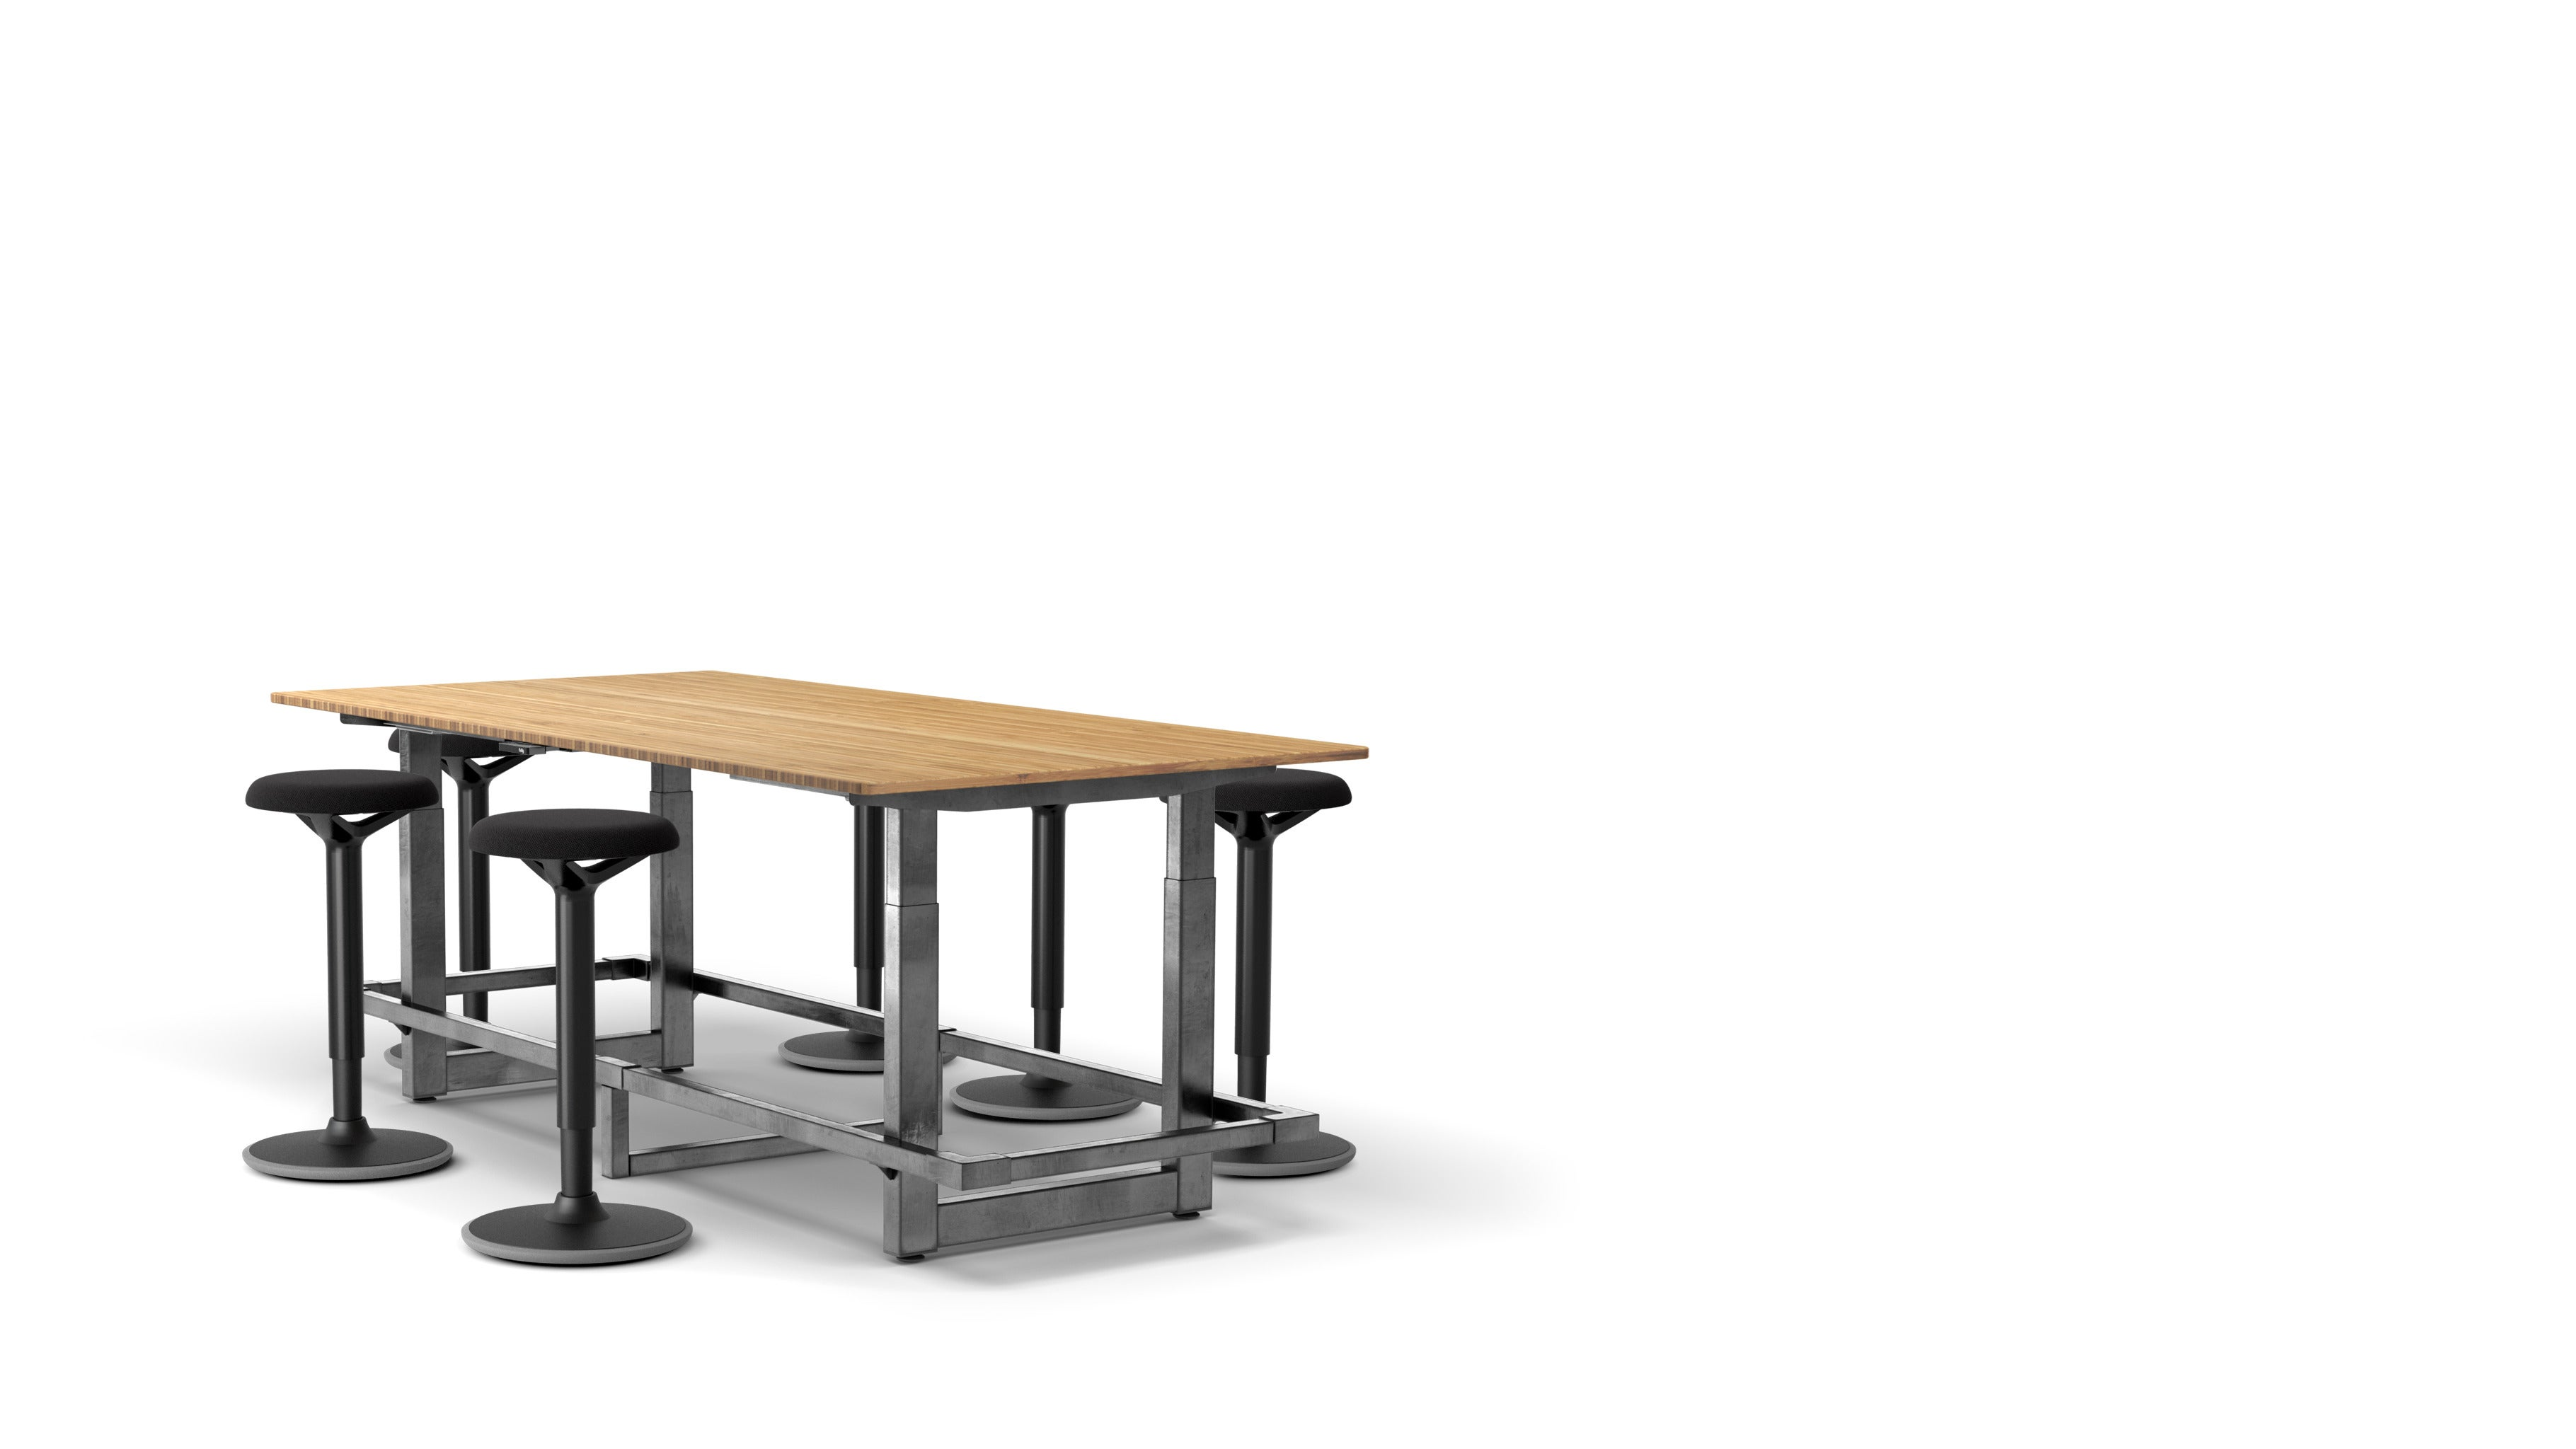 Jarvis Bamboo Adjustable-Height Conference Table Popular Setup 3